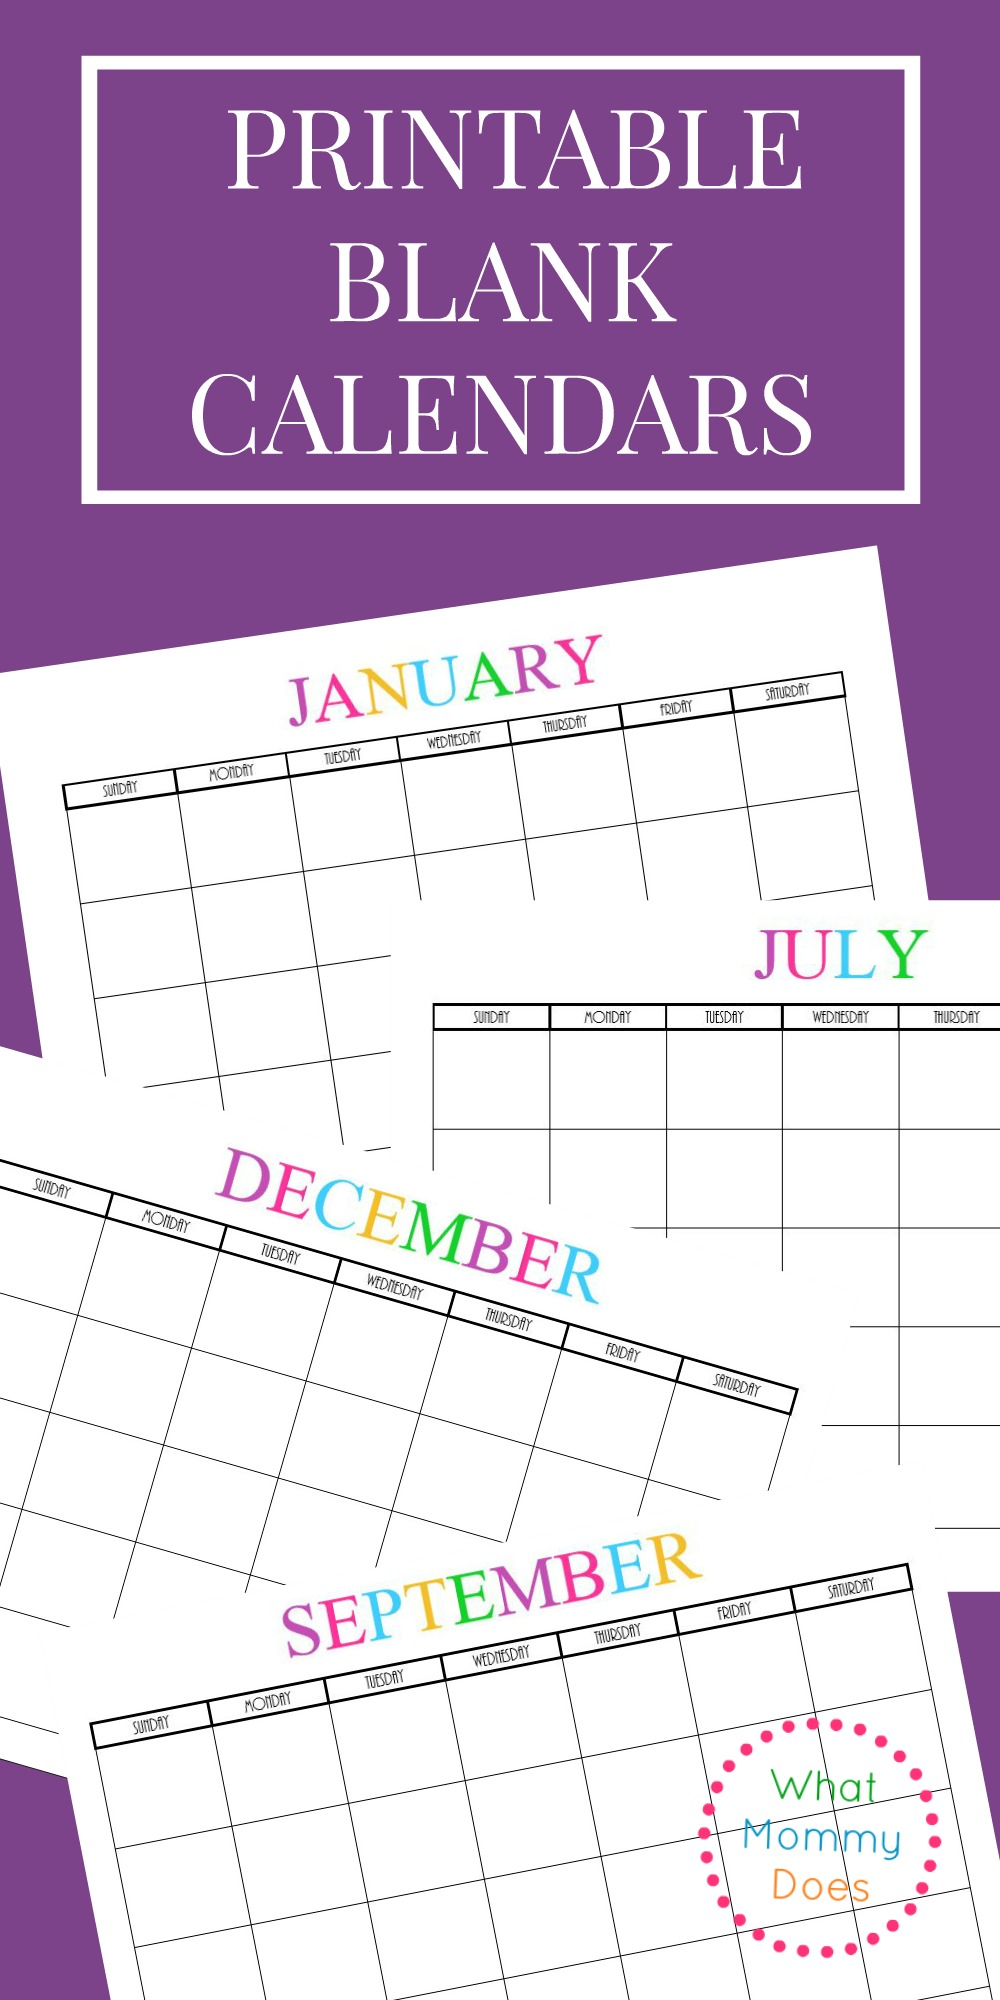 free printable blank monthly calendars - 2018, 2019, 2020, 2021+